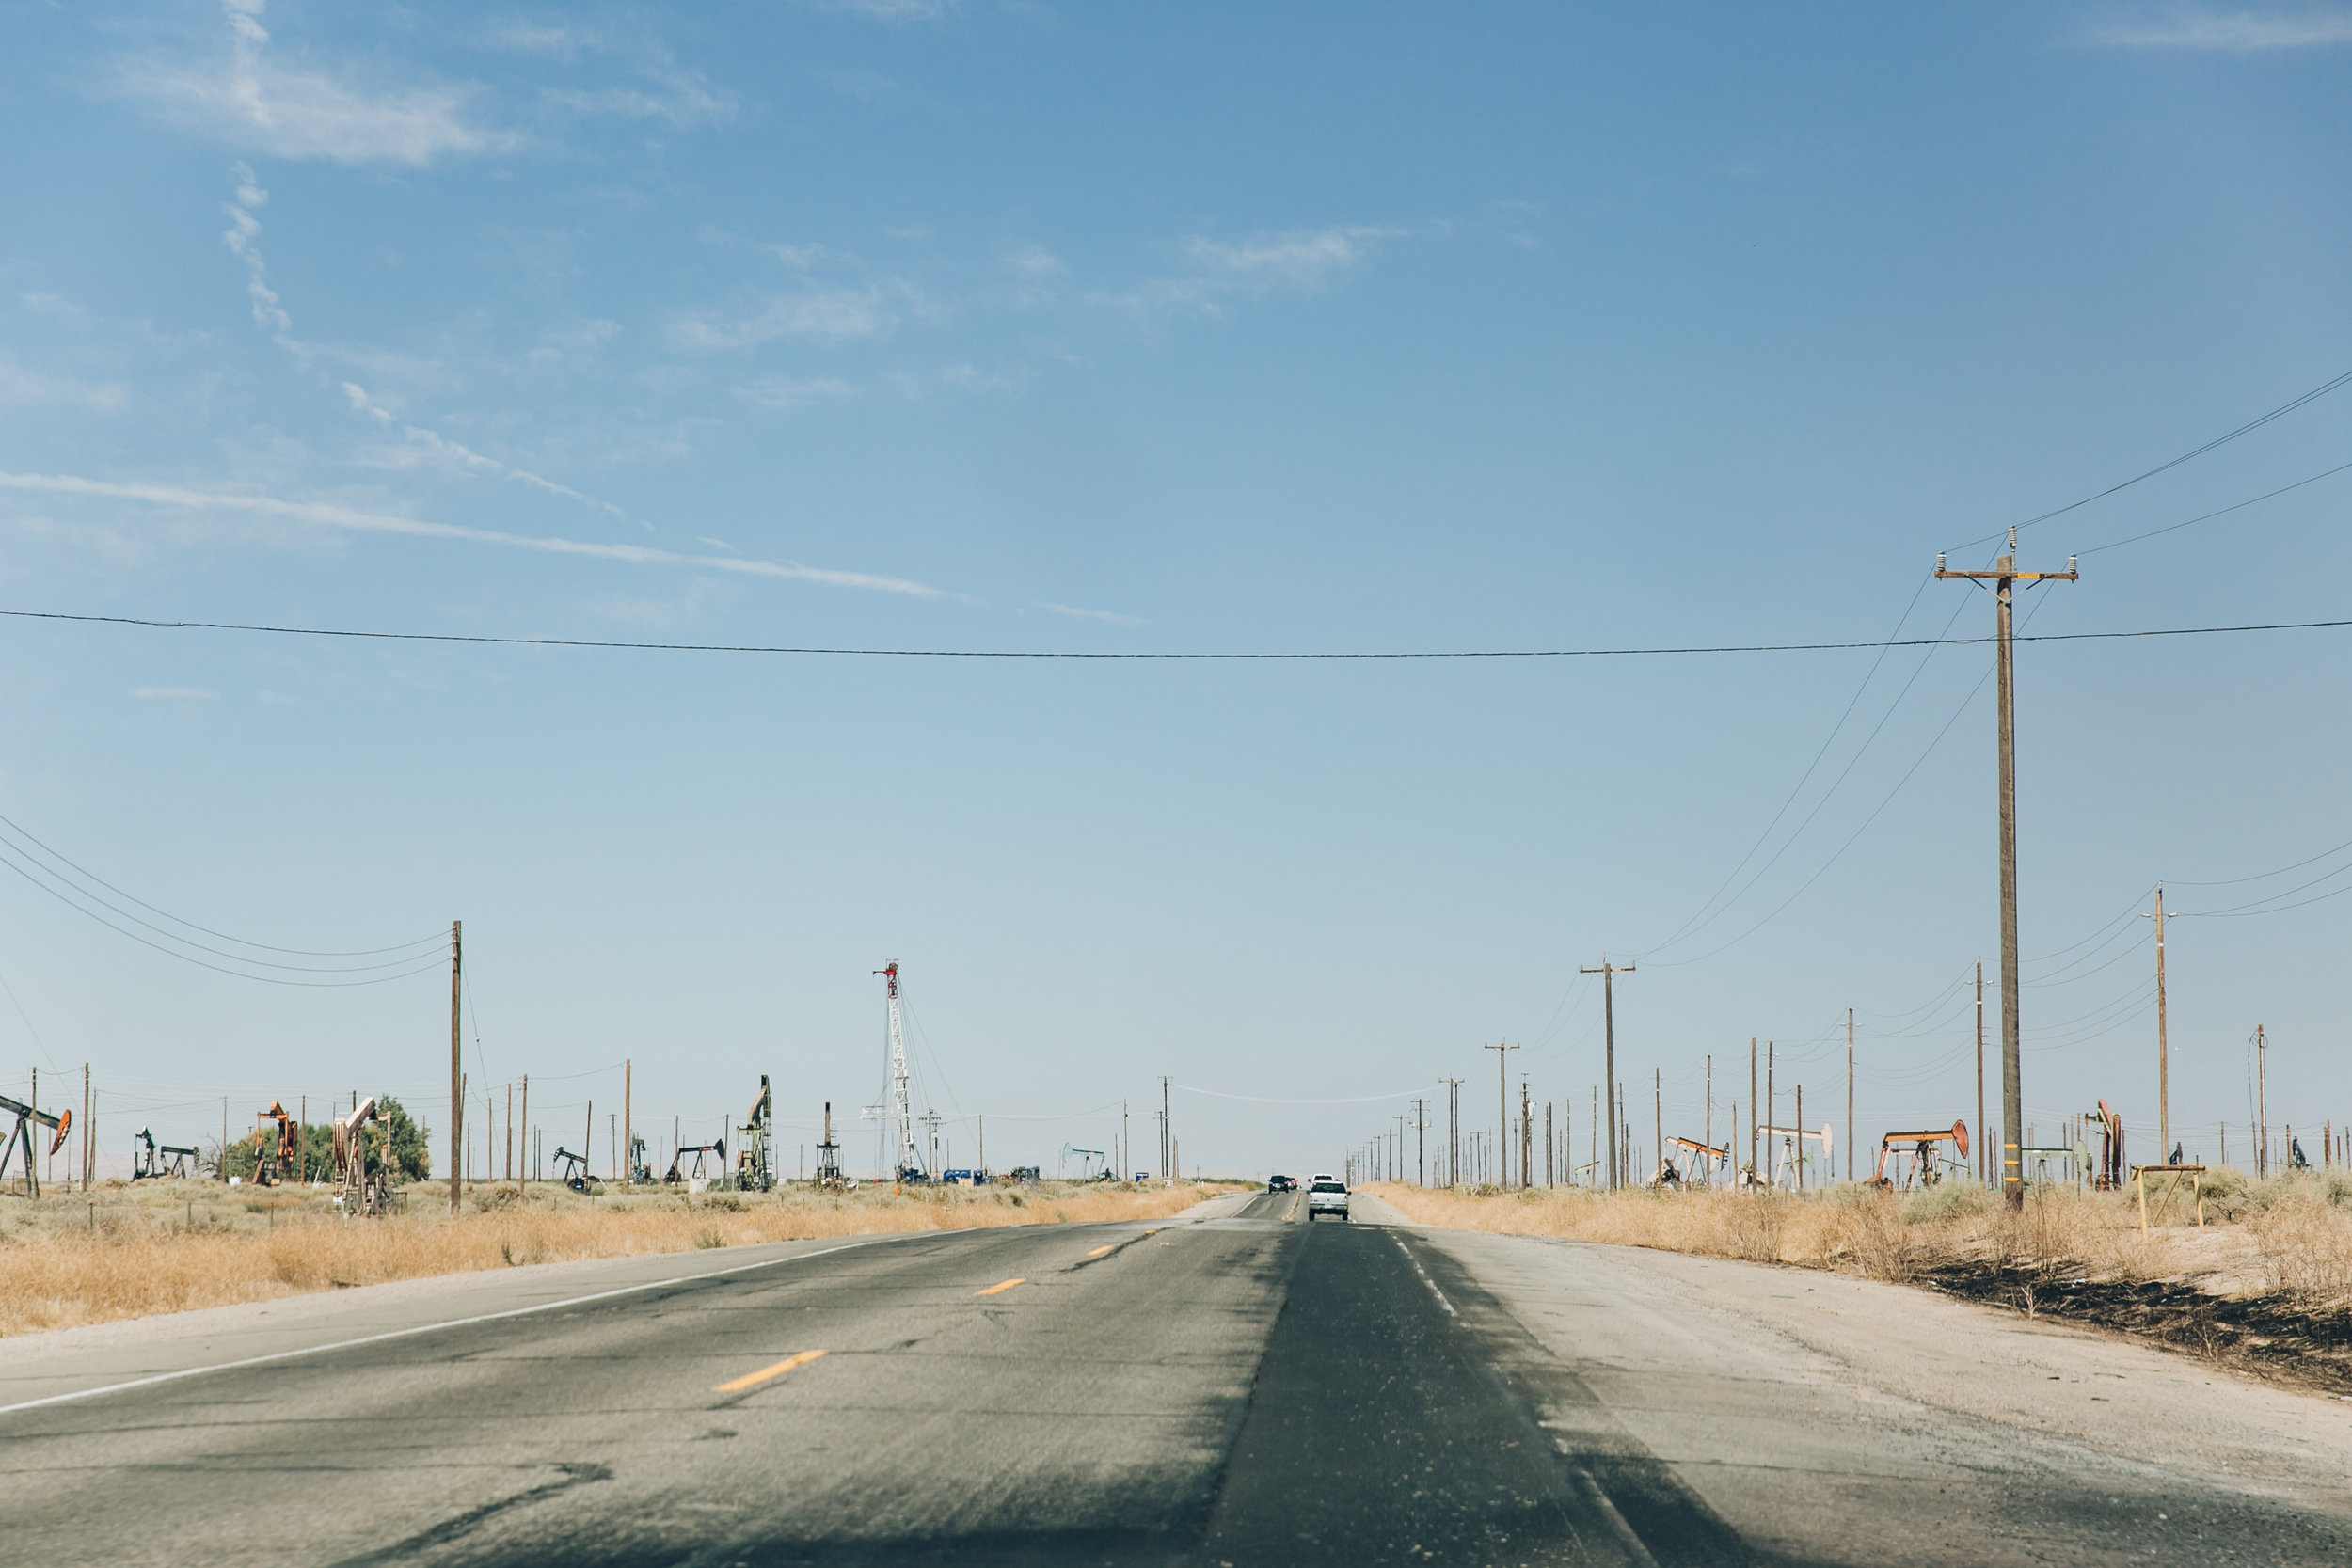 California road trip. Oil fields.